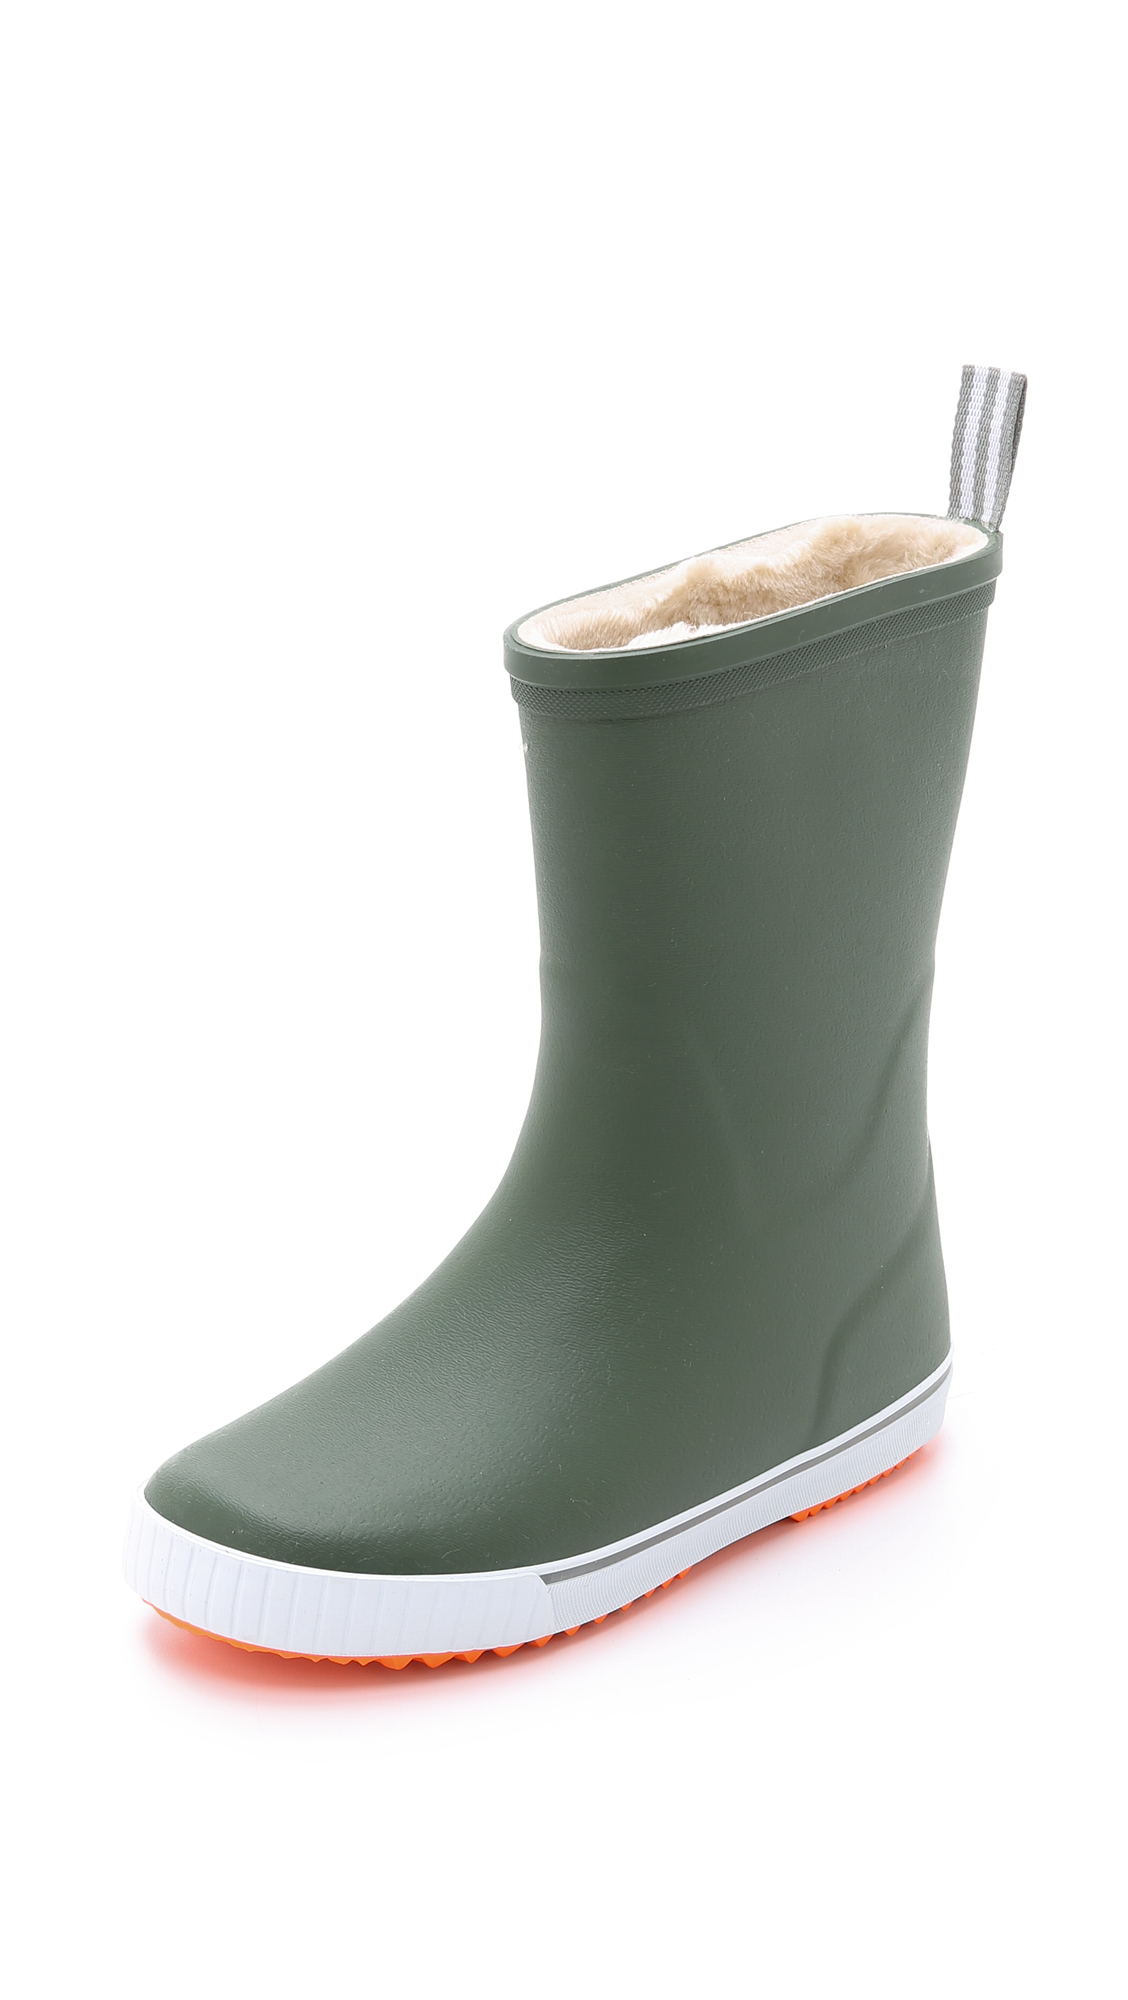 7e2adbbcc73 Lyst - Tretorn Wings Vinter Boots in Green